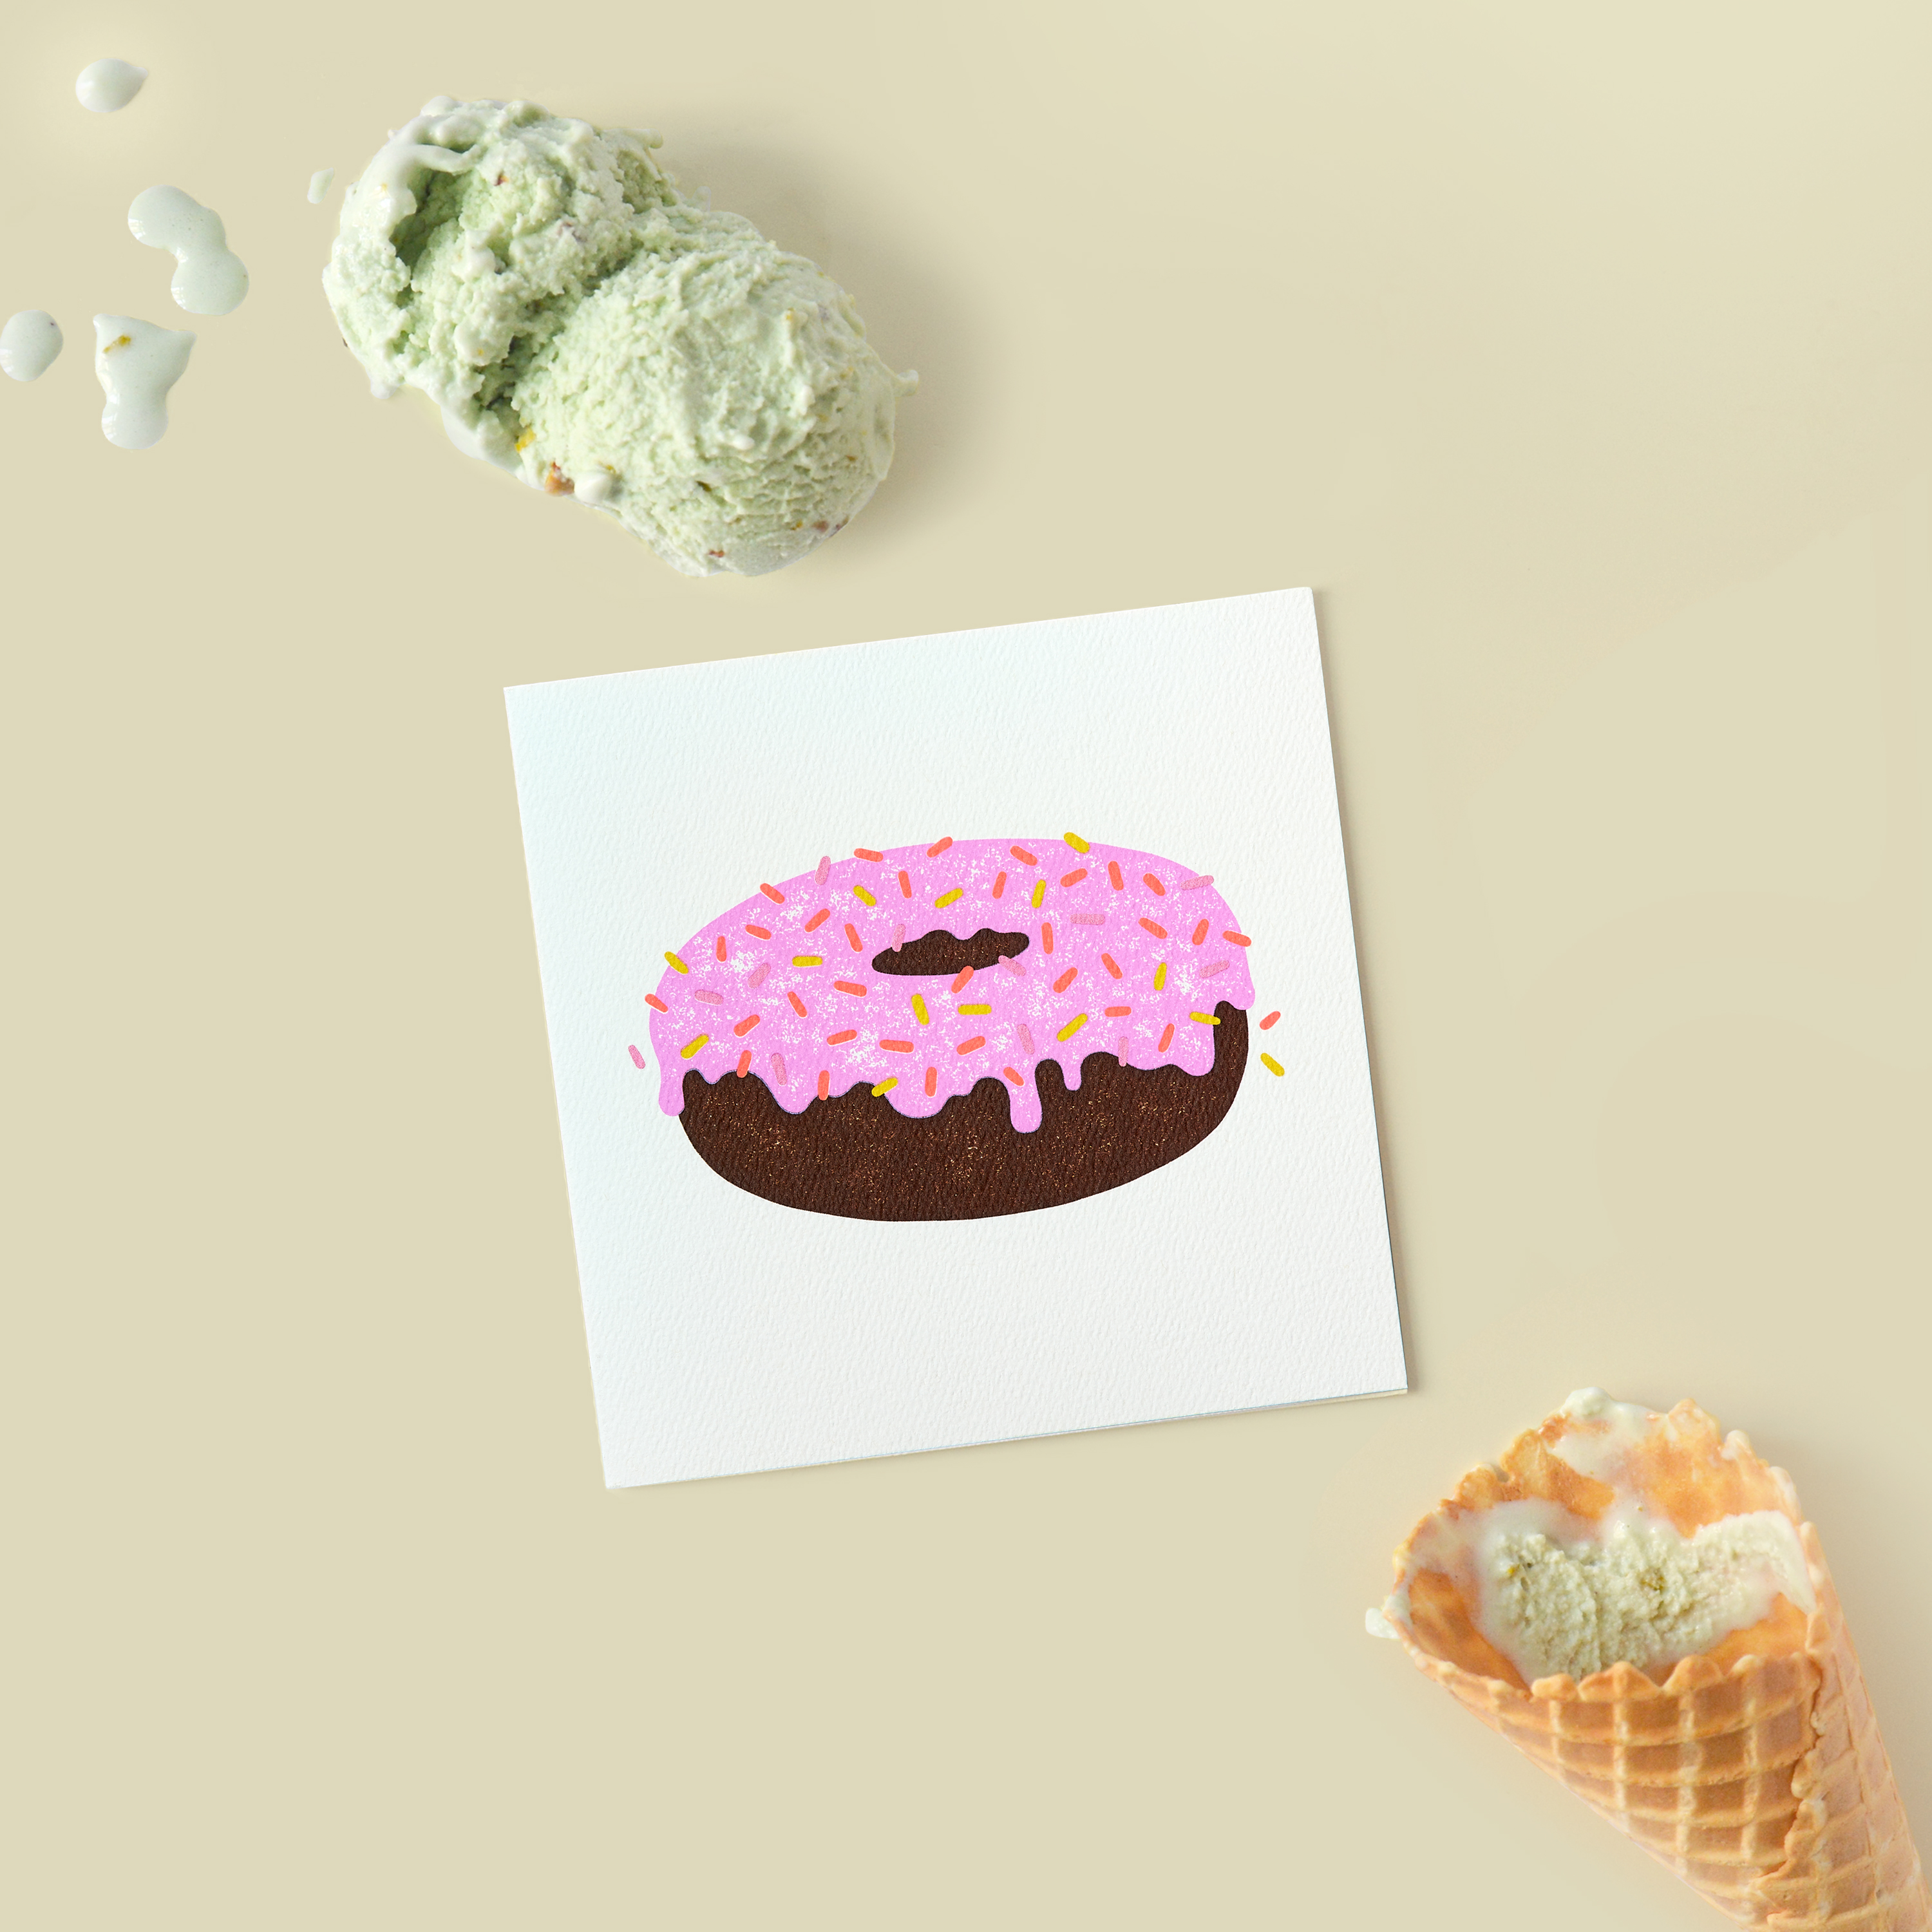 Doughnut Blank Card - Birthday, Friendship, Thinking of You image